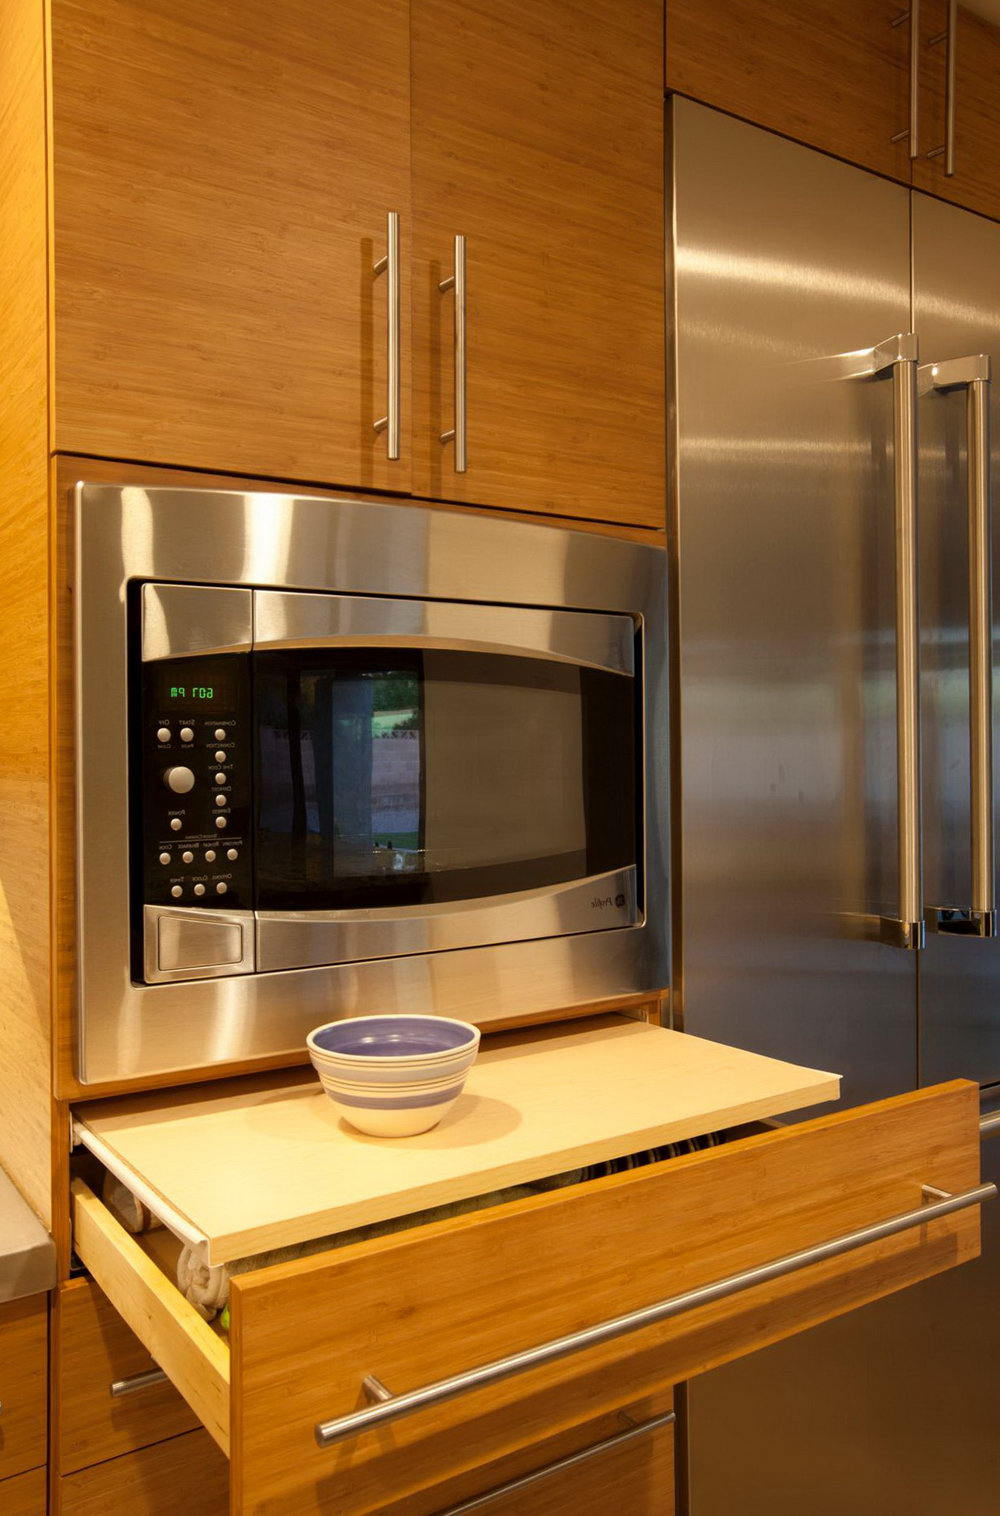 Kitchen Cabinets With Microwave Shelf